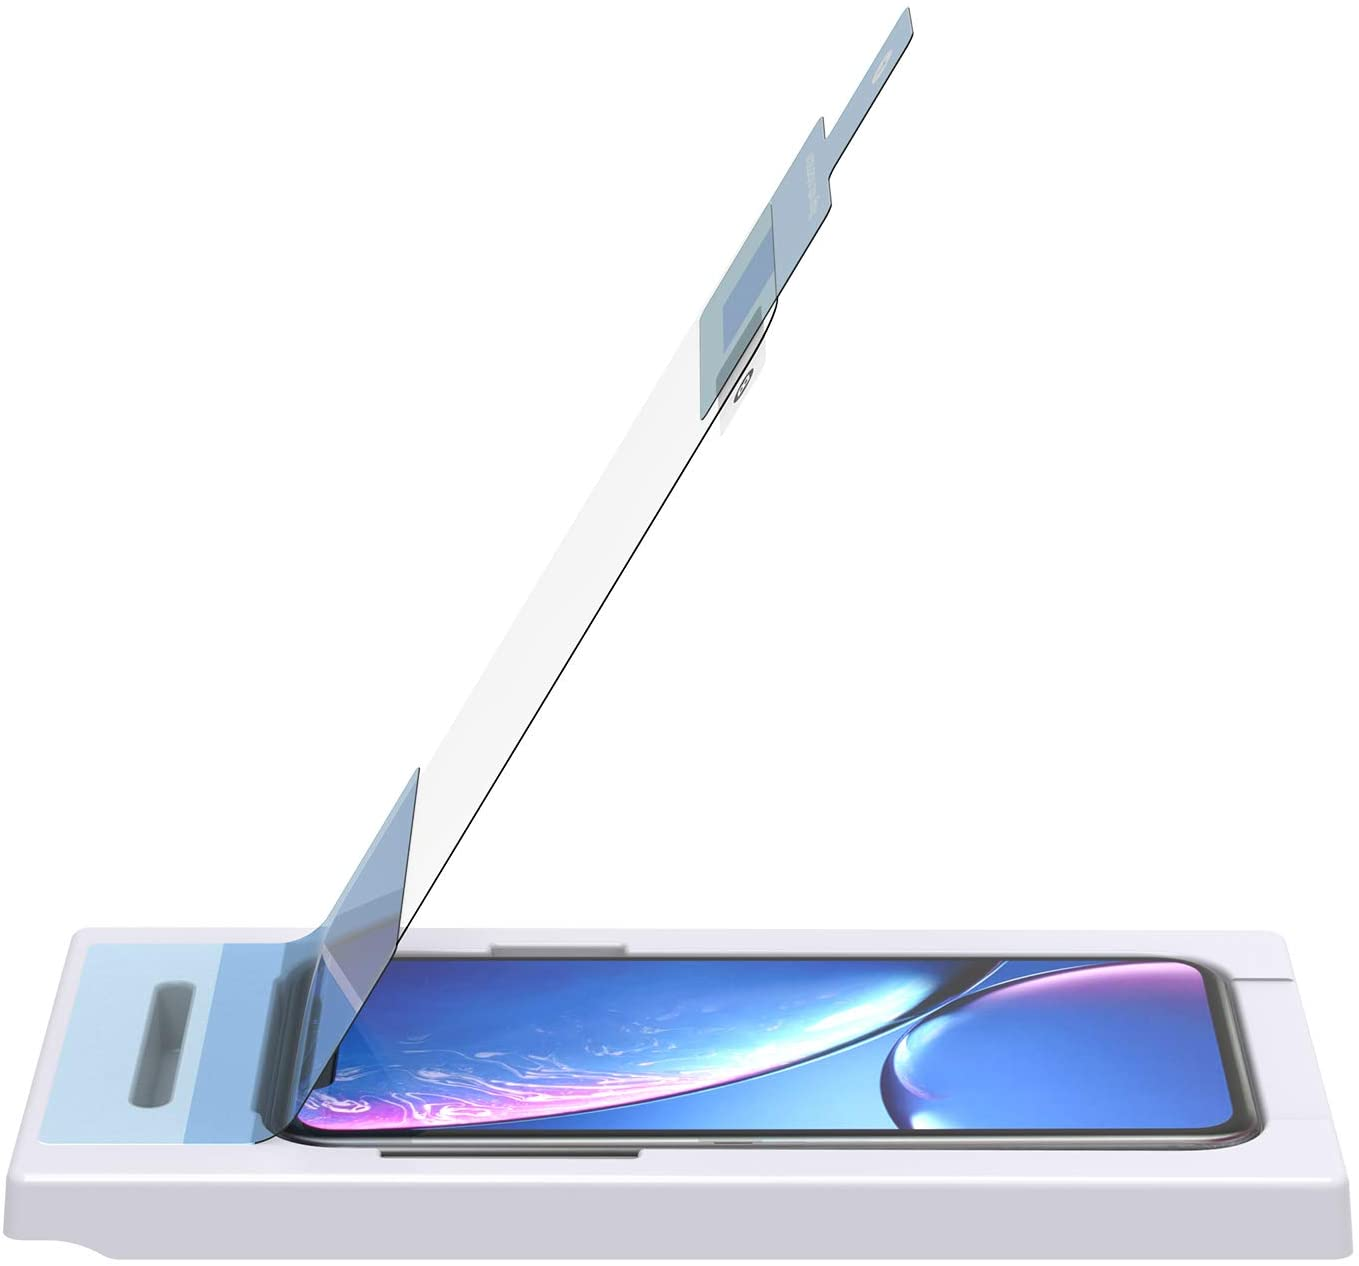 GoTo Tempered Glass Screen Protector for iPhone 11/XR, Crack and Scratch Protection with Easy Install Tray